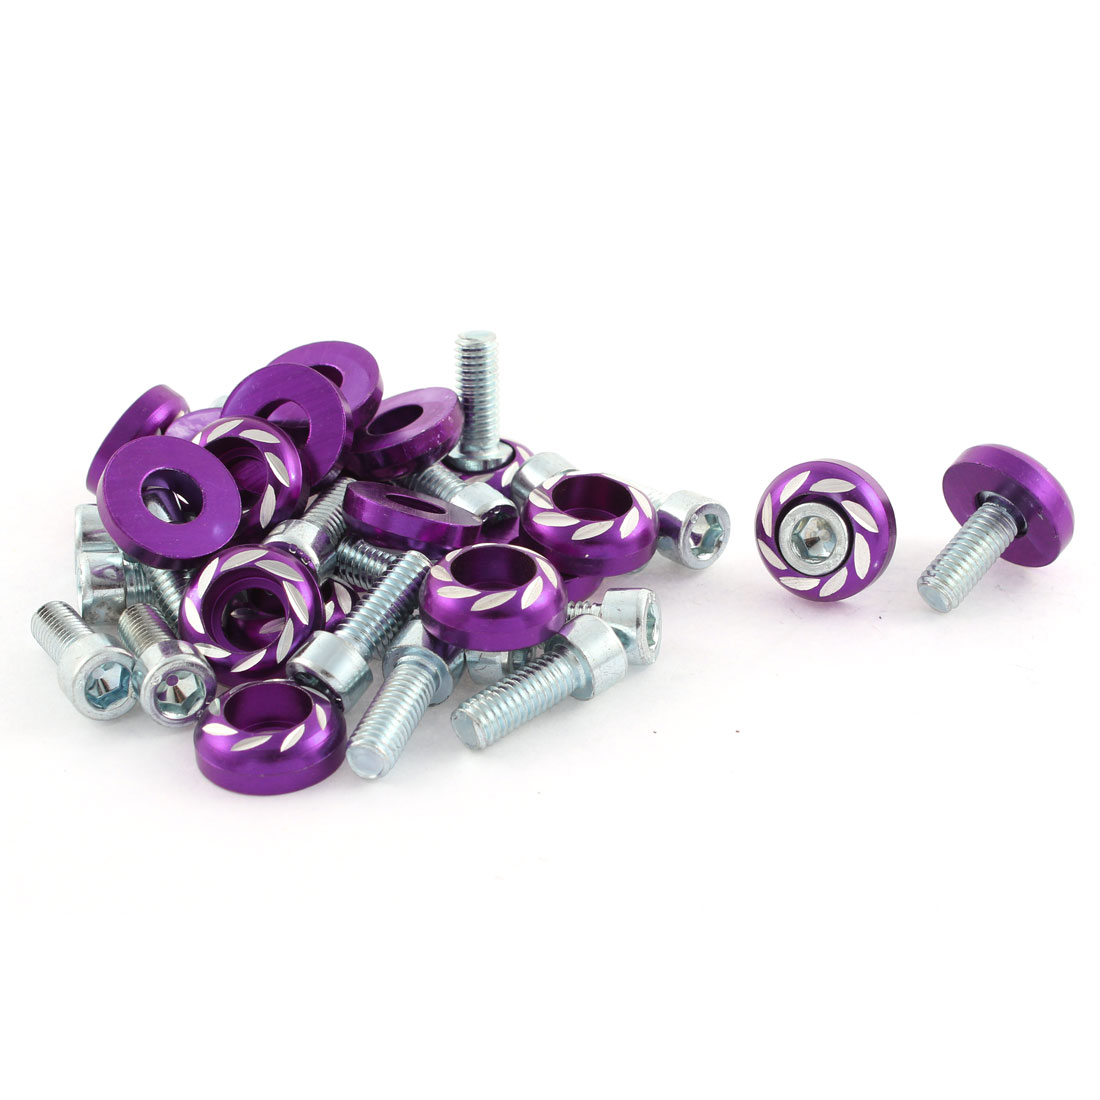 20 Pcs Purple Metal Leaves Print License Plate Bolt Screw for Car Auto